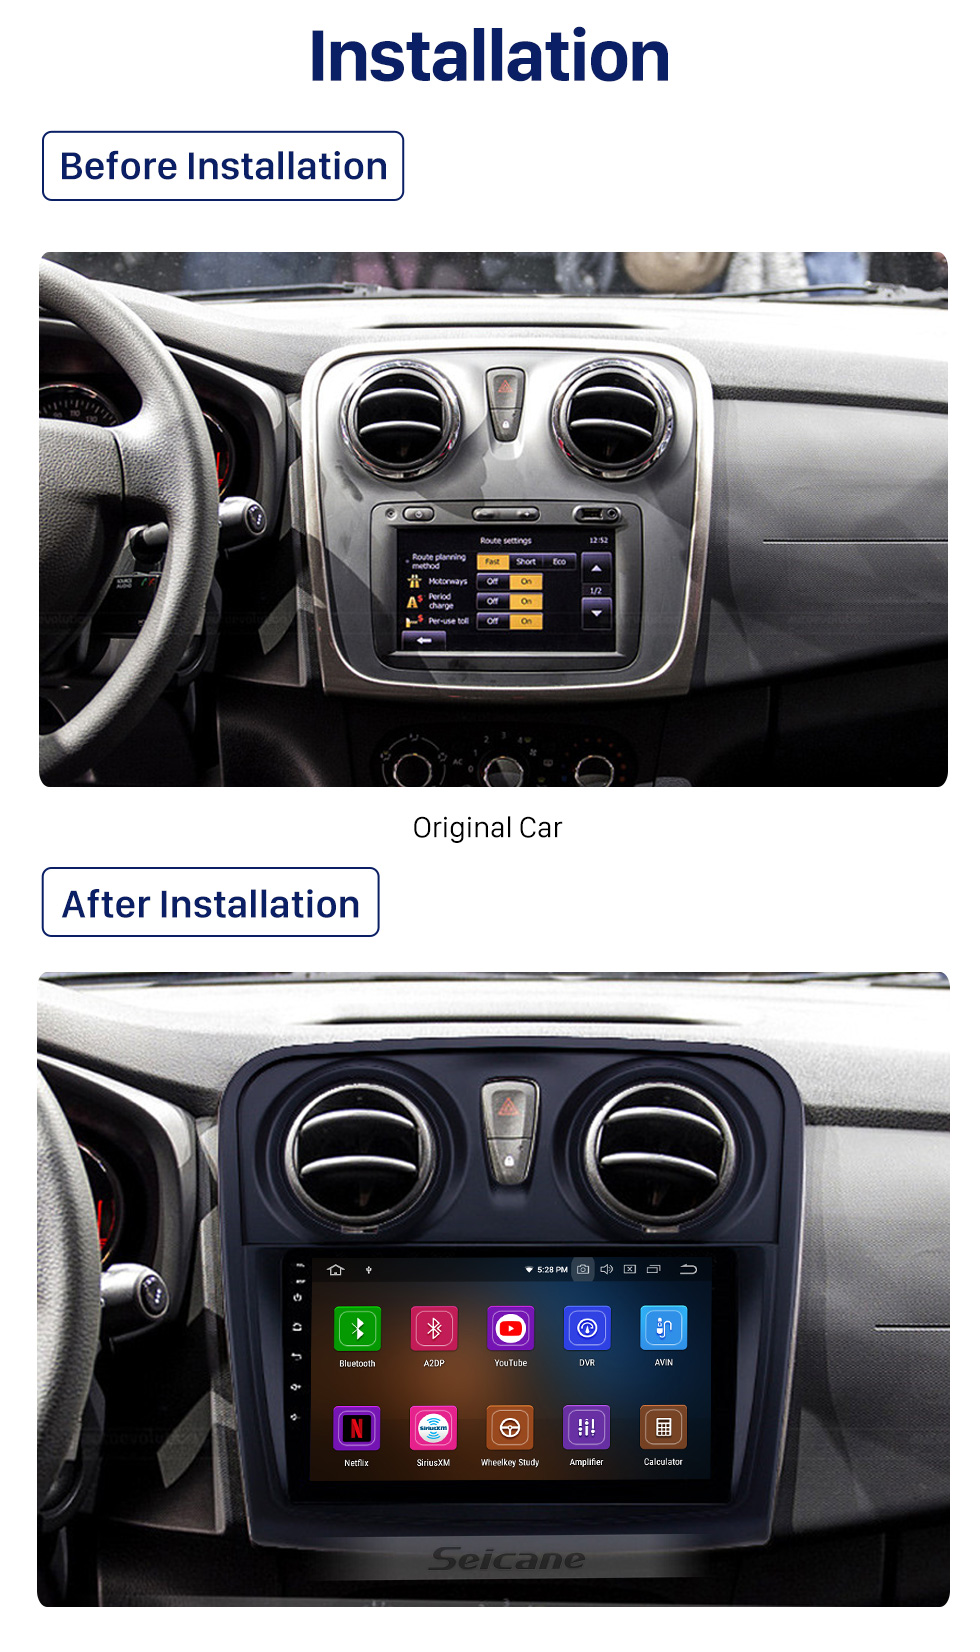 Seicane 2012-2017 Renault Dacia Sandero Android 10.0 9-Zoll-GPS-Navigationsradio Bluetooth HD Touchscreen Carplay-Unterstützung TPMS 1080P